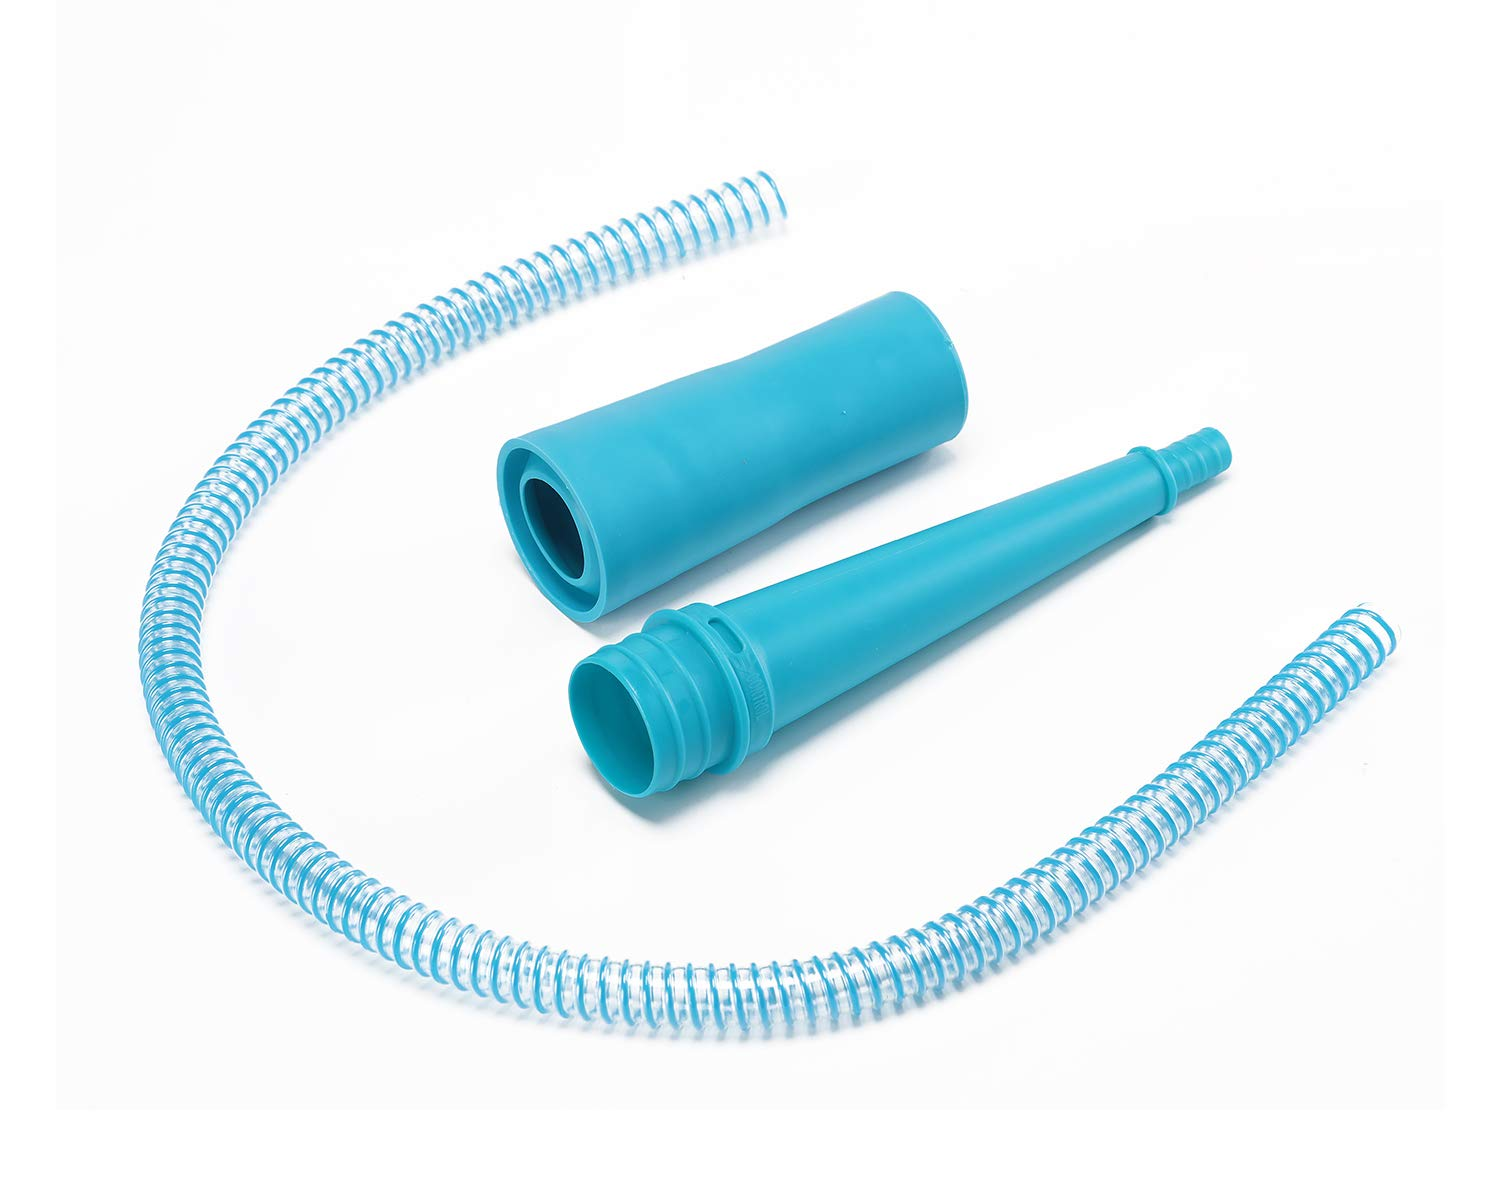 Dryer Lint Vacuum Attachment Dust Cleaner Pipe Vacuum Hose Cleaner Head Dryer Vent Lint Remover, As Seen On TV (1pack Blue)